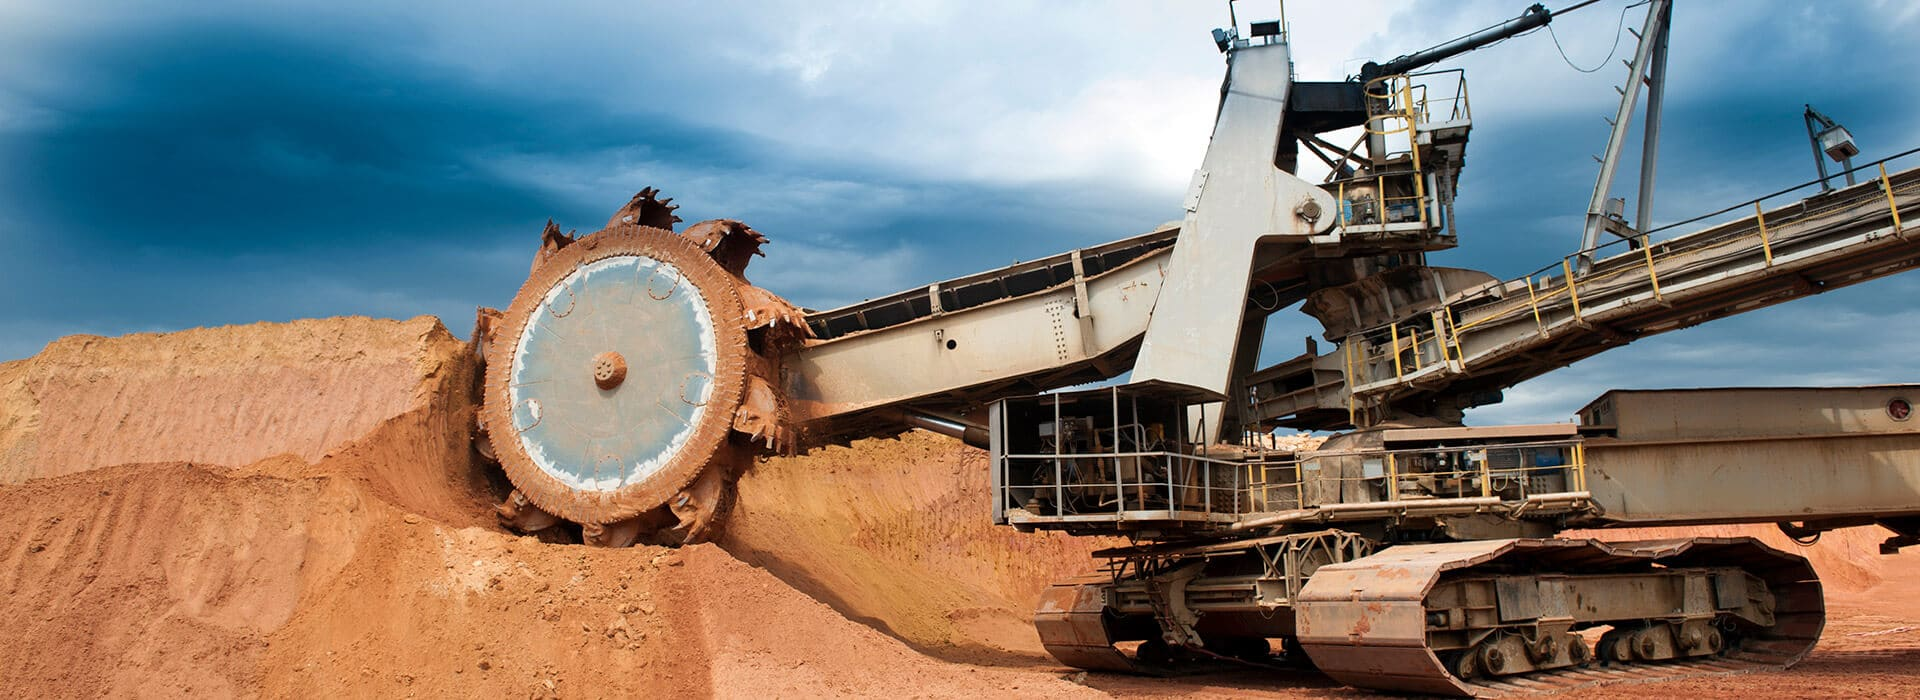 Mining Industries Served by TMT